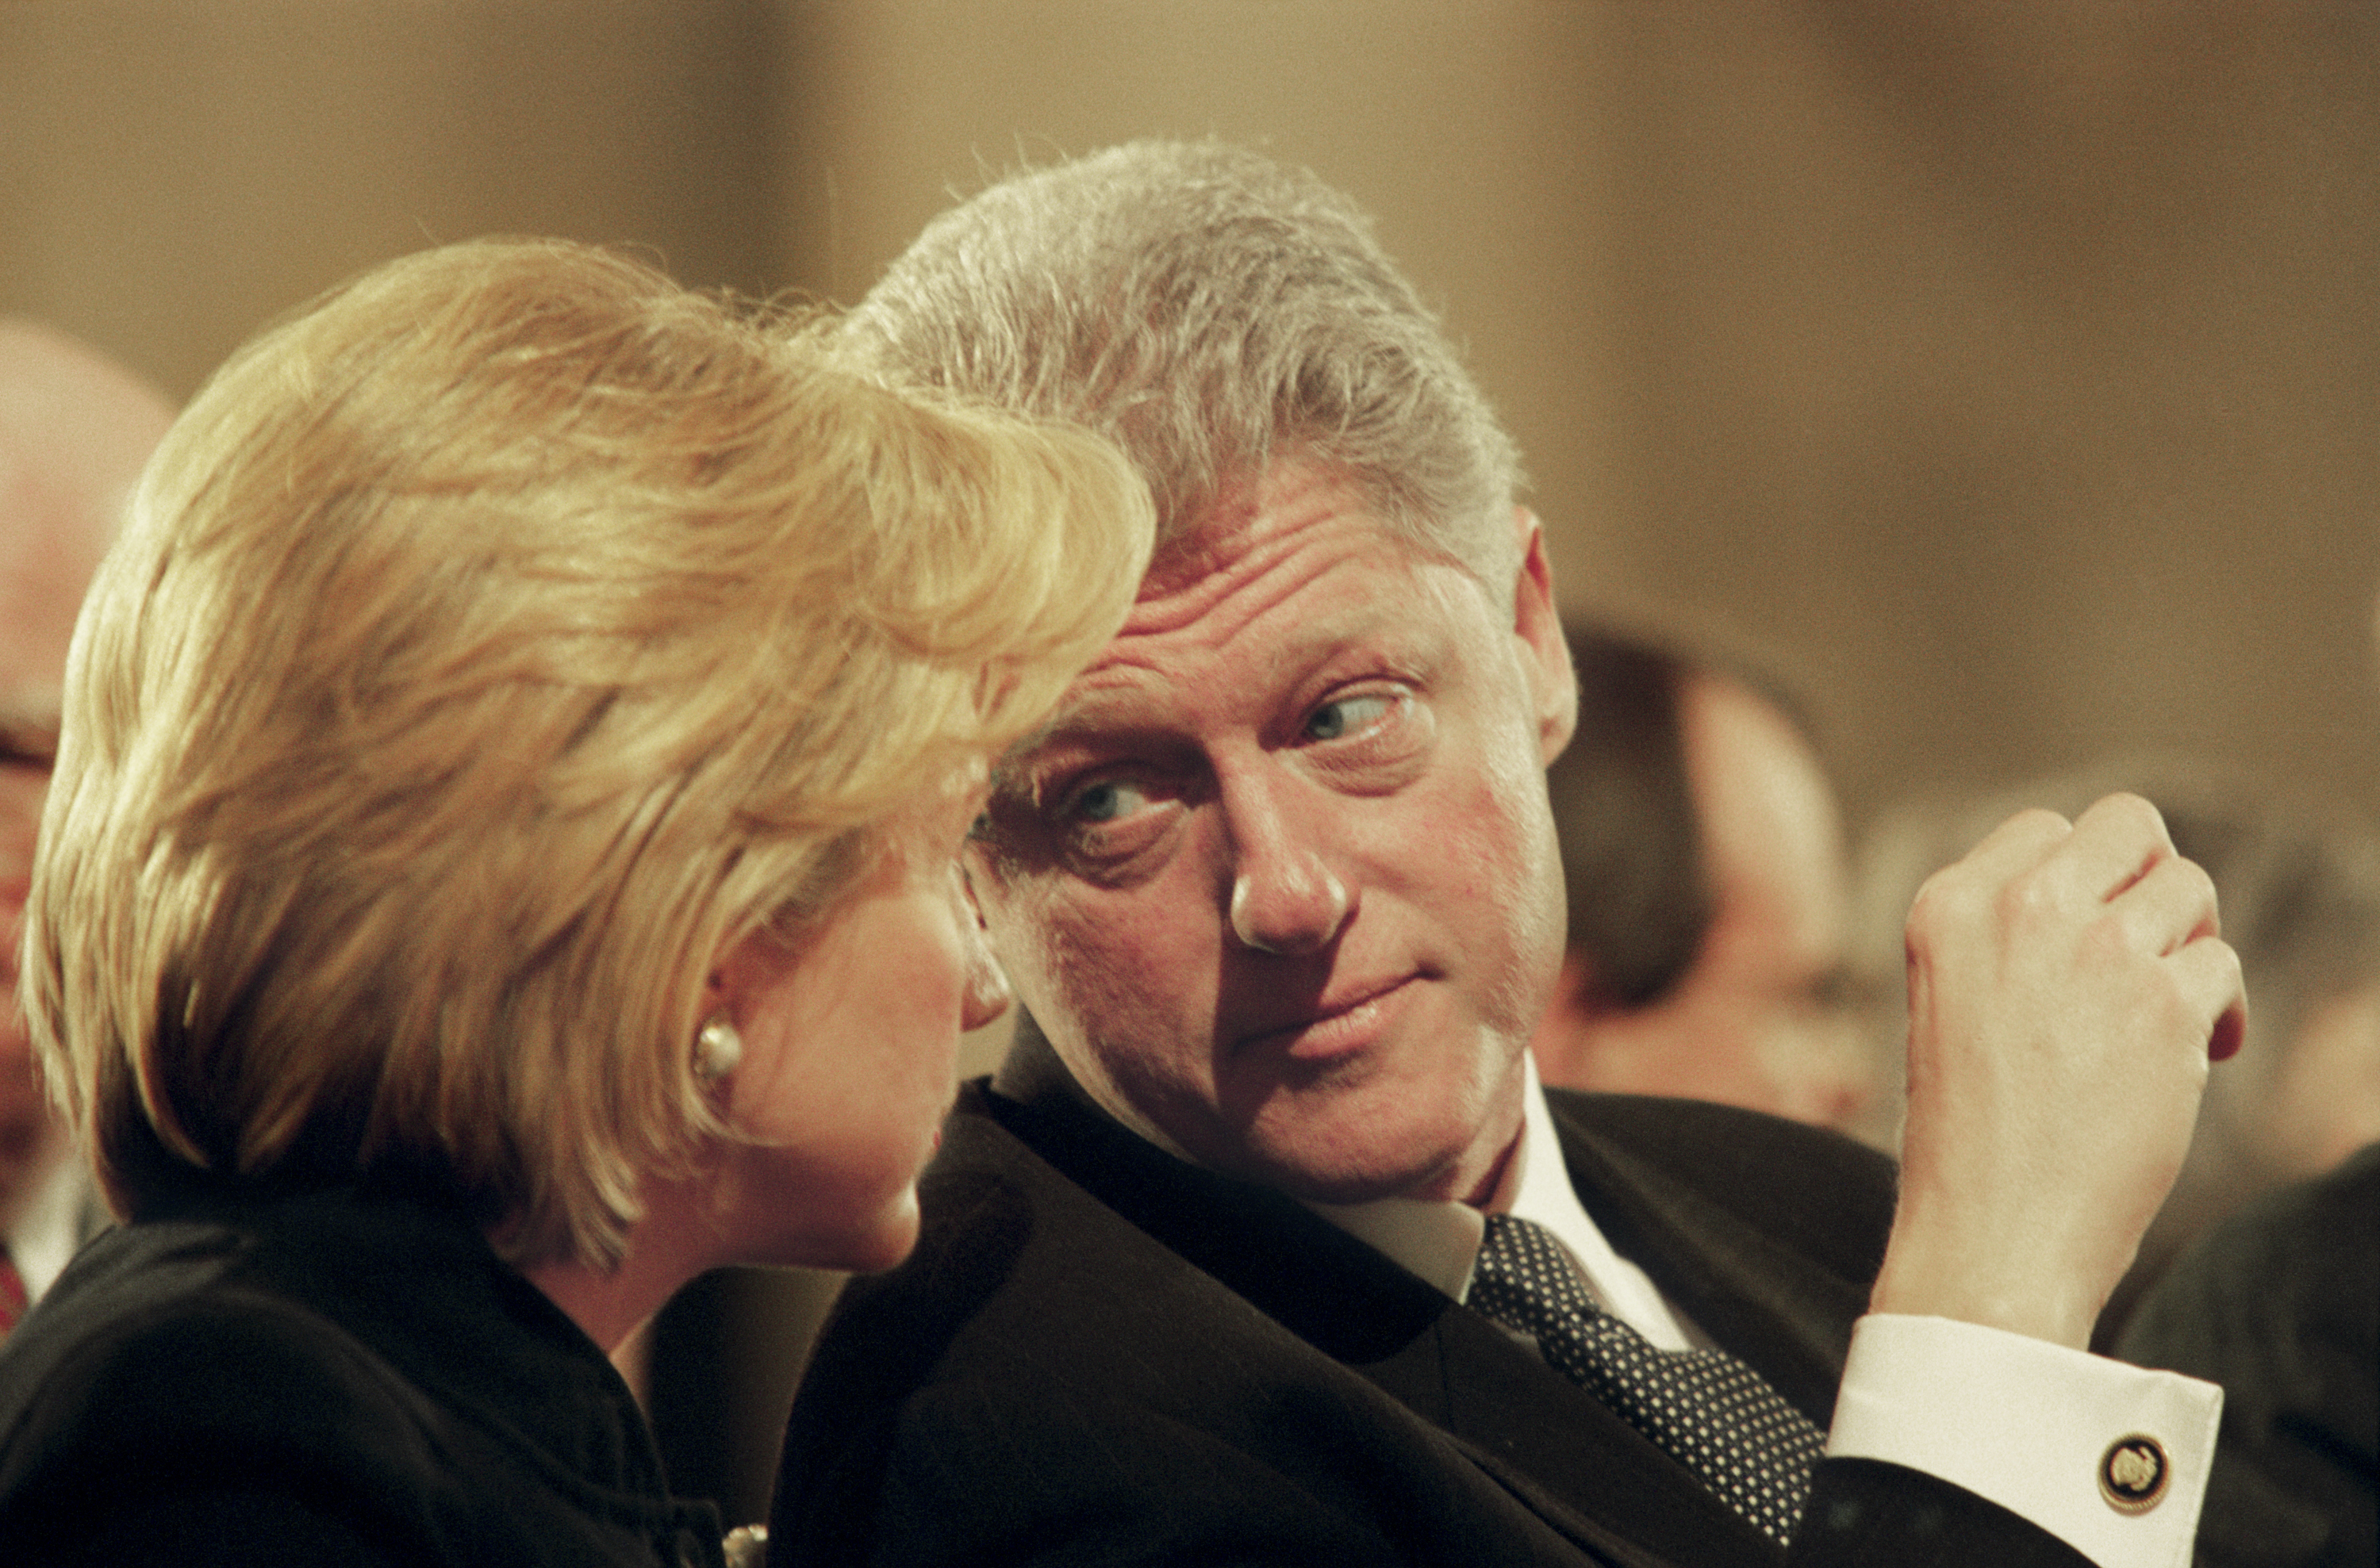 12 Details from the Clinton Impeachment Trial That You Should Know